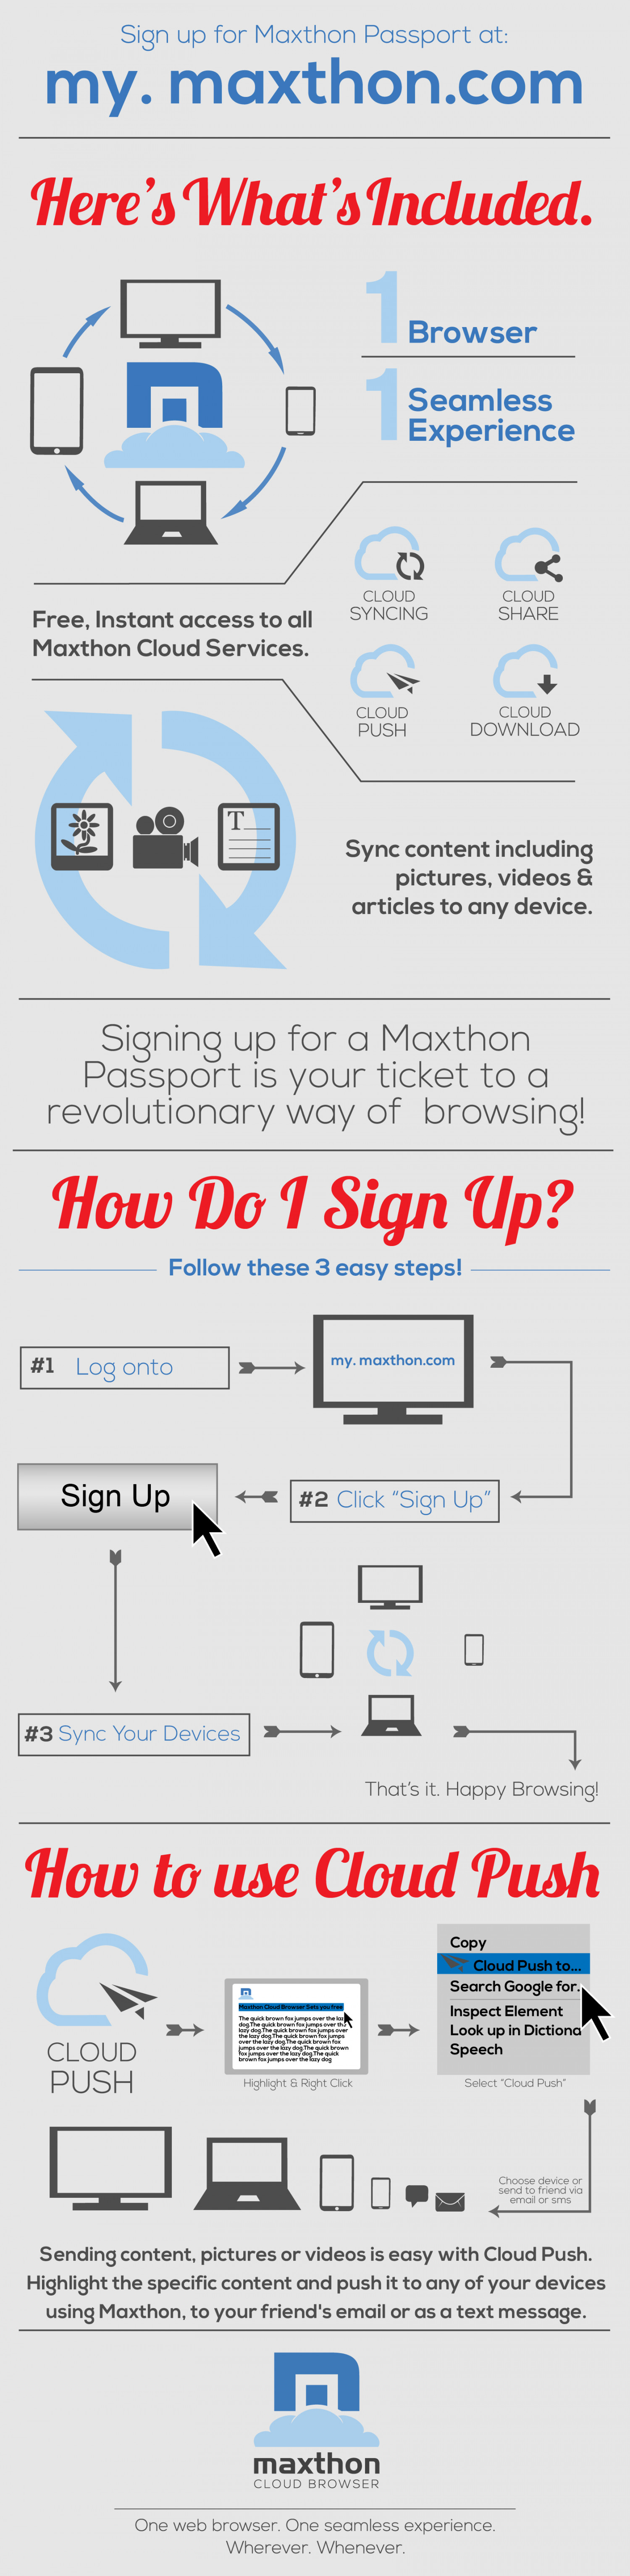 Maxthon Passport Infographic